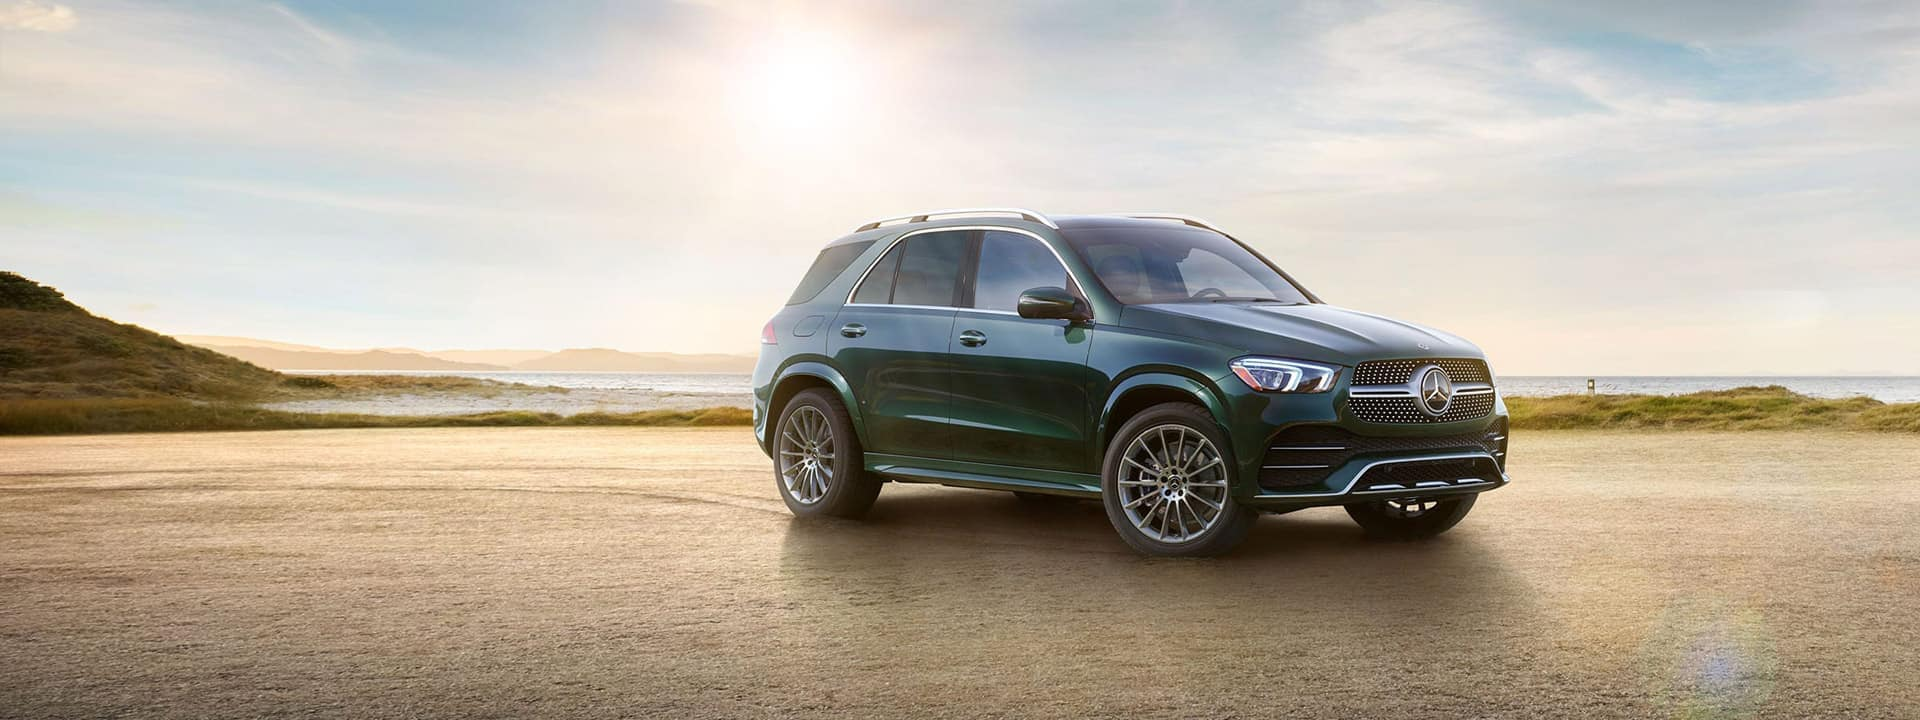 2020 Mercedes Benz Gle 350 Suv Specs Price Features Henderson